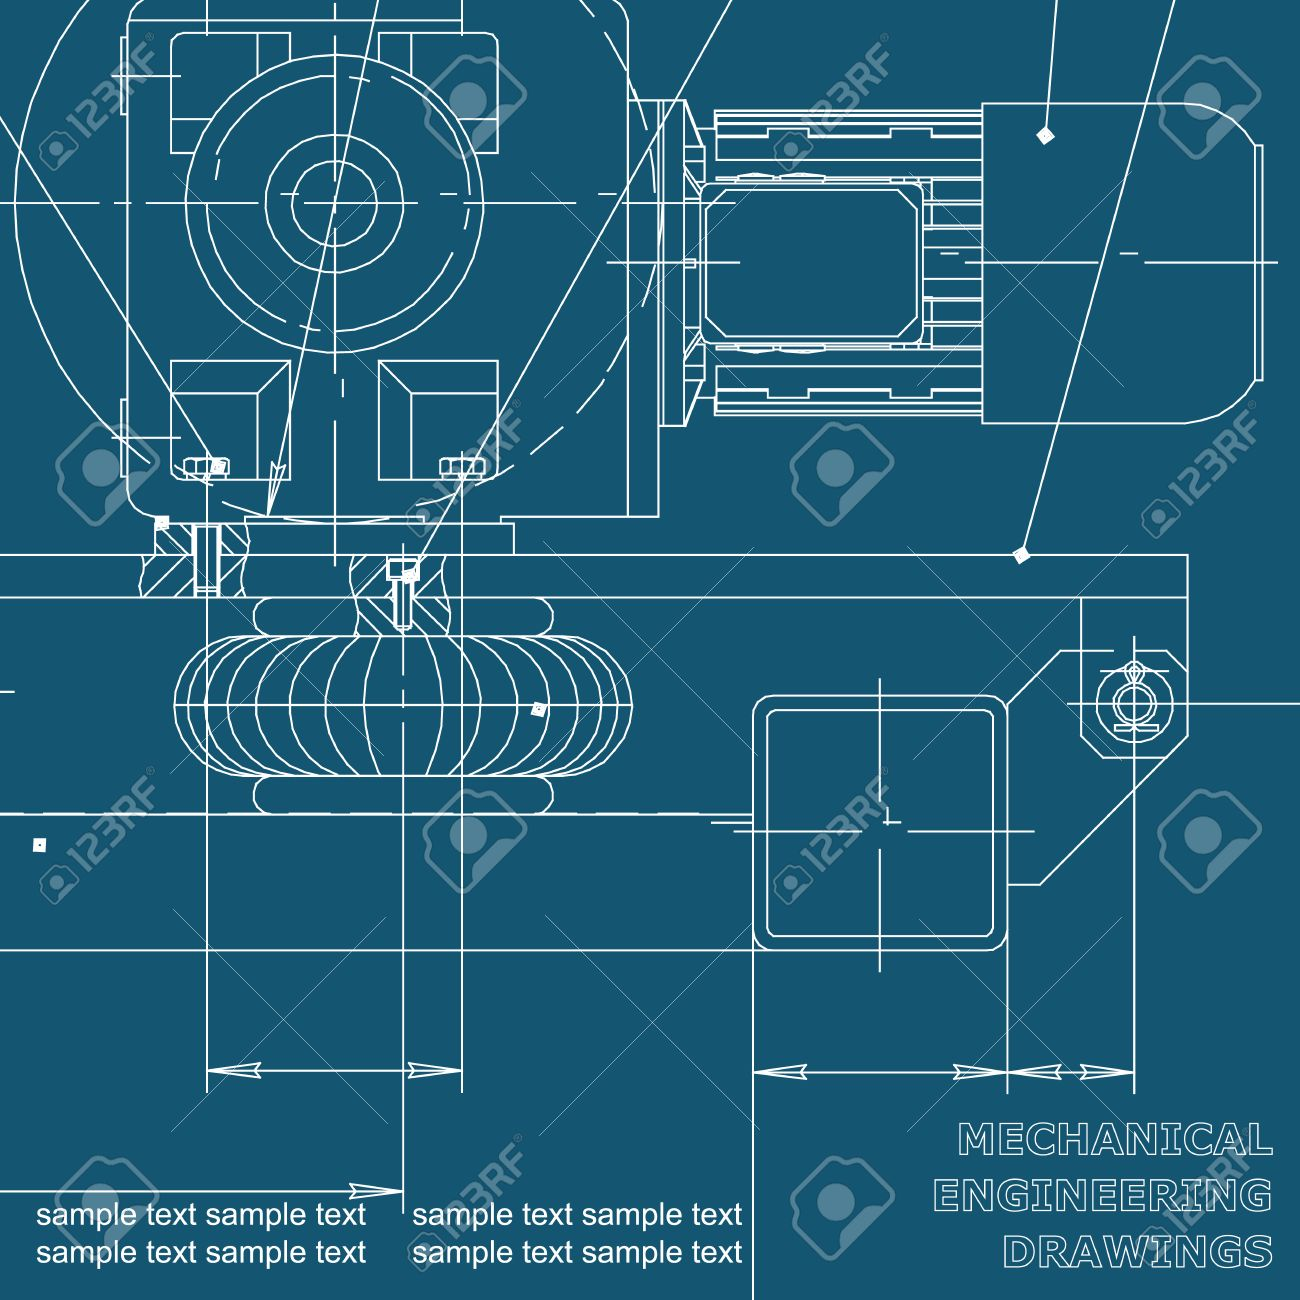 Mechanical engineering drawings on a blue background blueprints mechanical engineering drawings on a blue background blueprints vector cover background for malvernweather Gallery